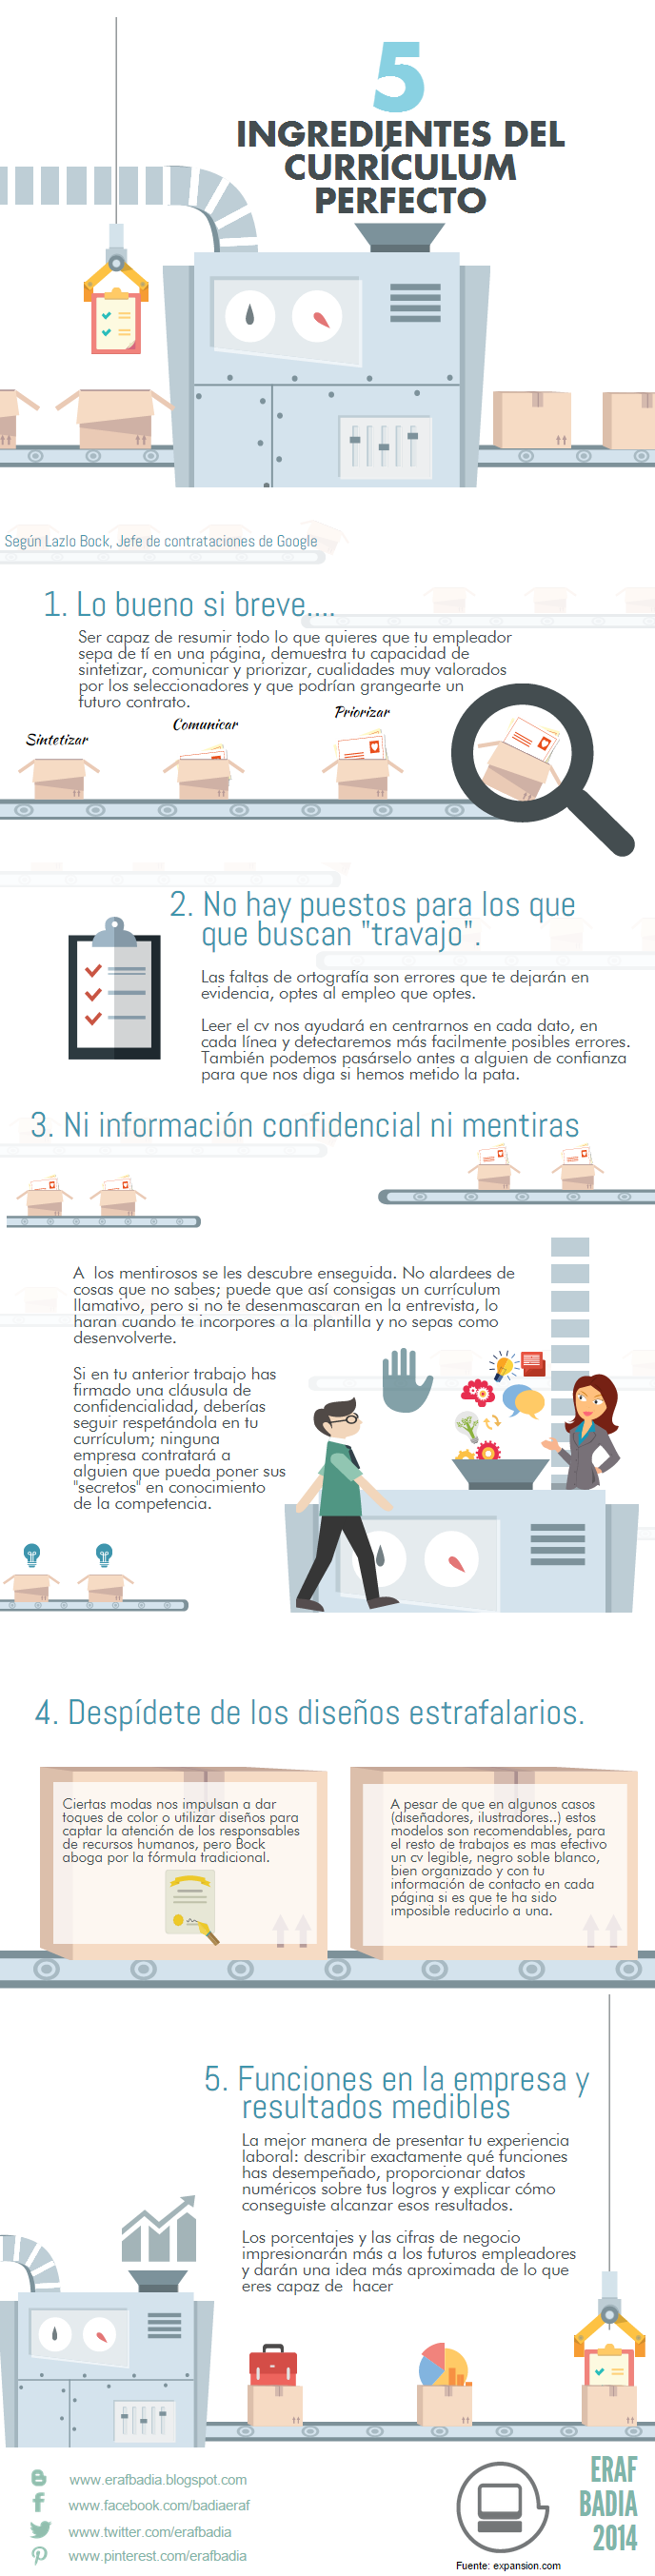 Los 5 ingredientes del Curriculum perfecto